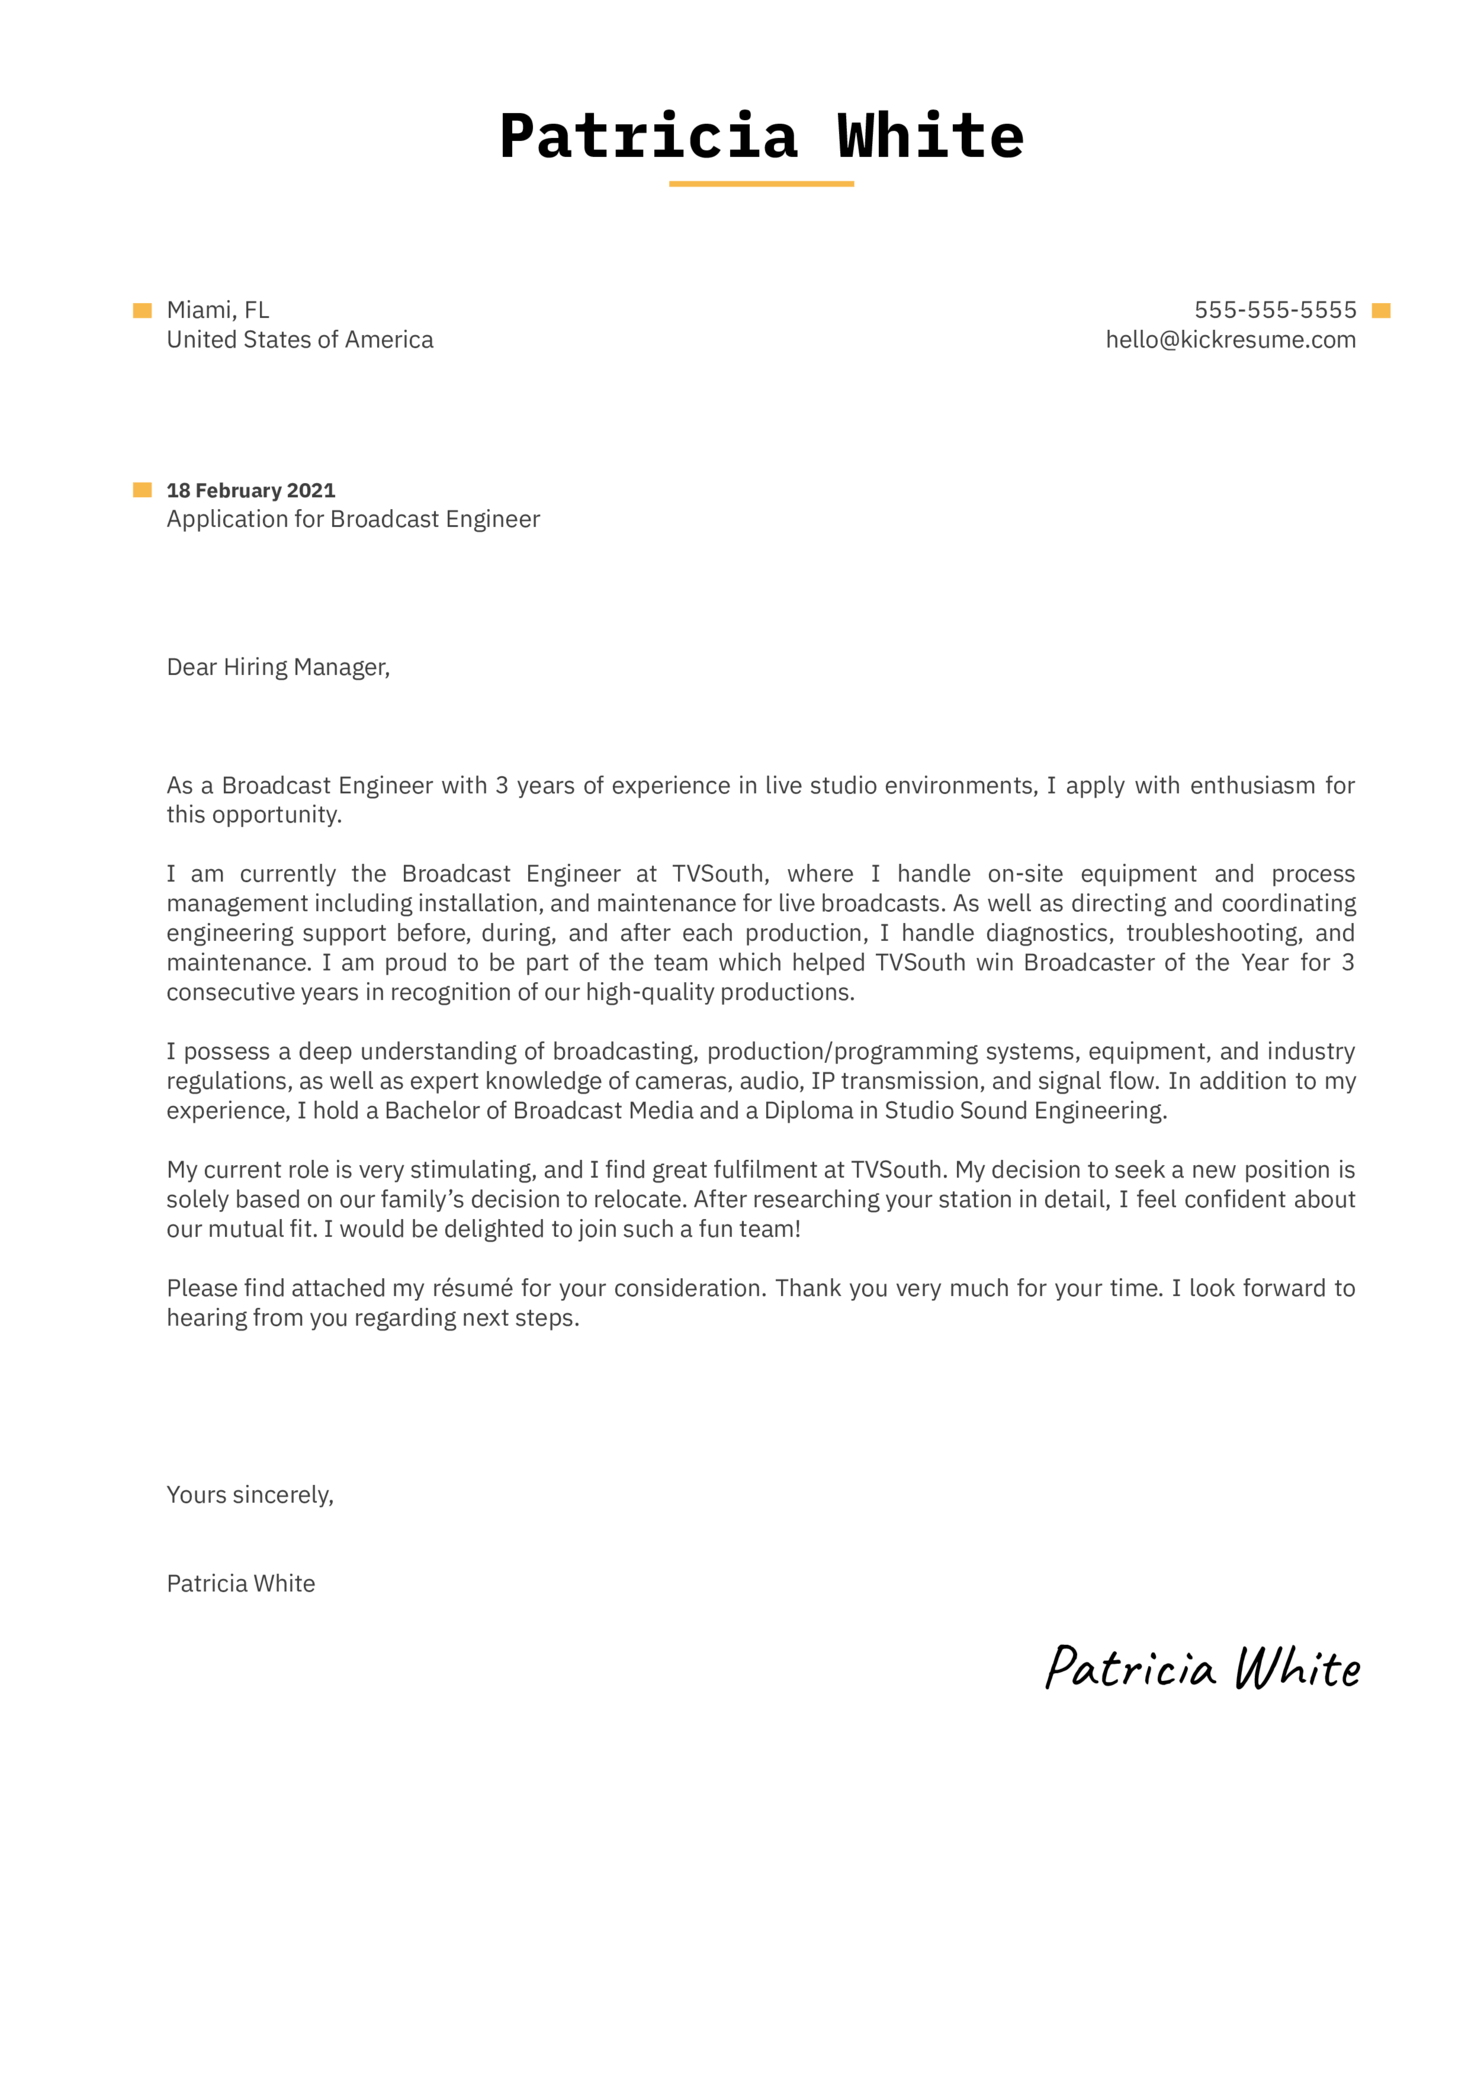 Broadcast Engineer Cover Letter Example